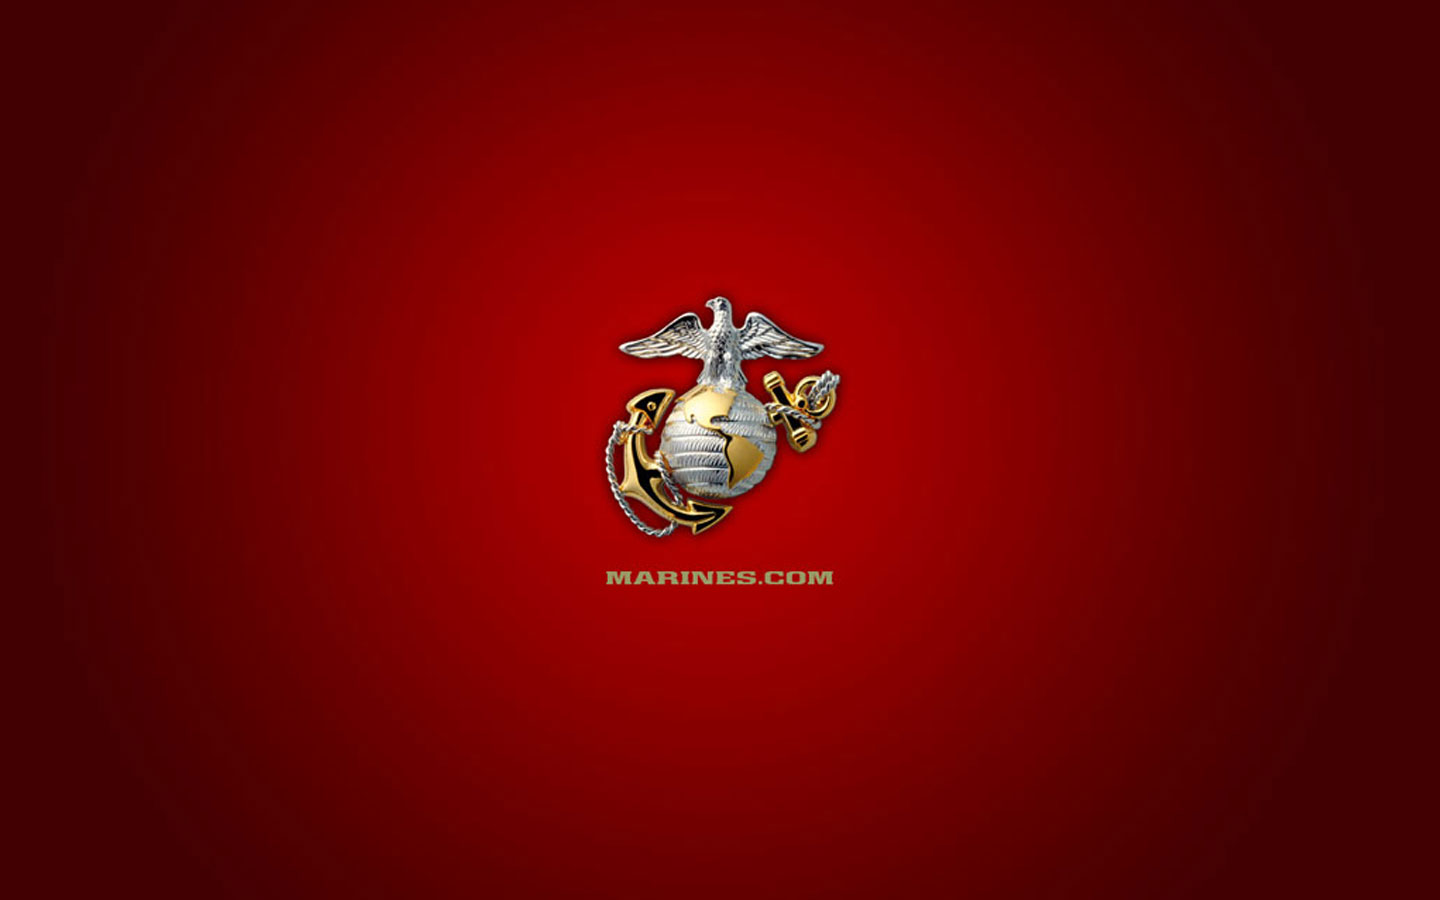 usmc logo wallpaper 1440x900